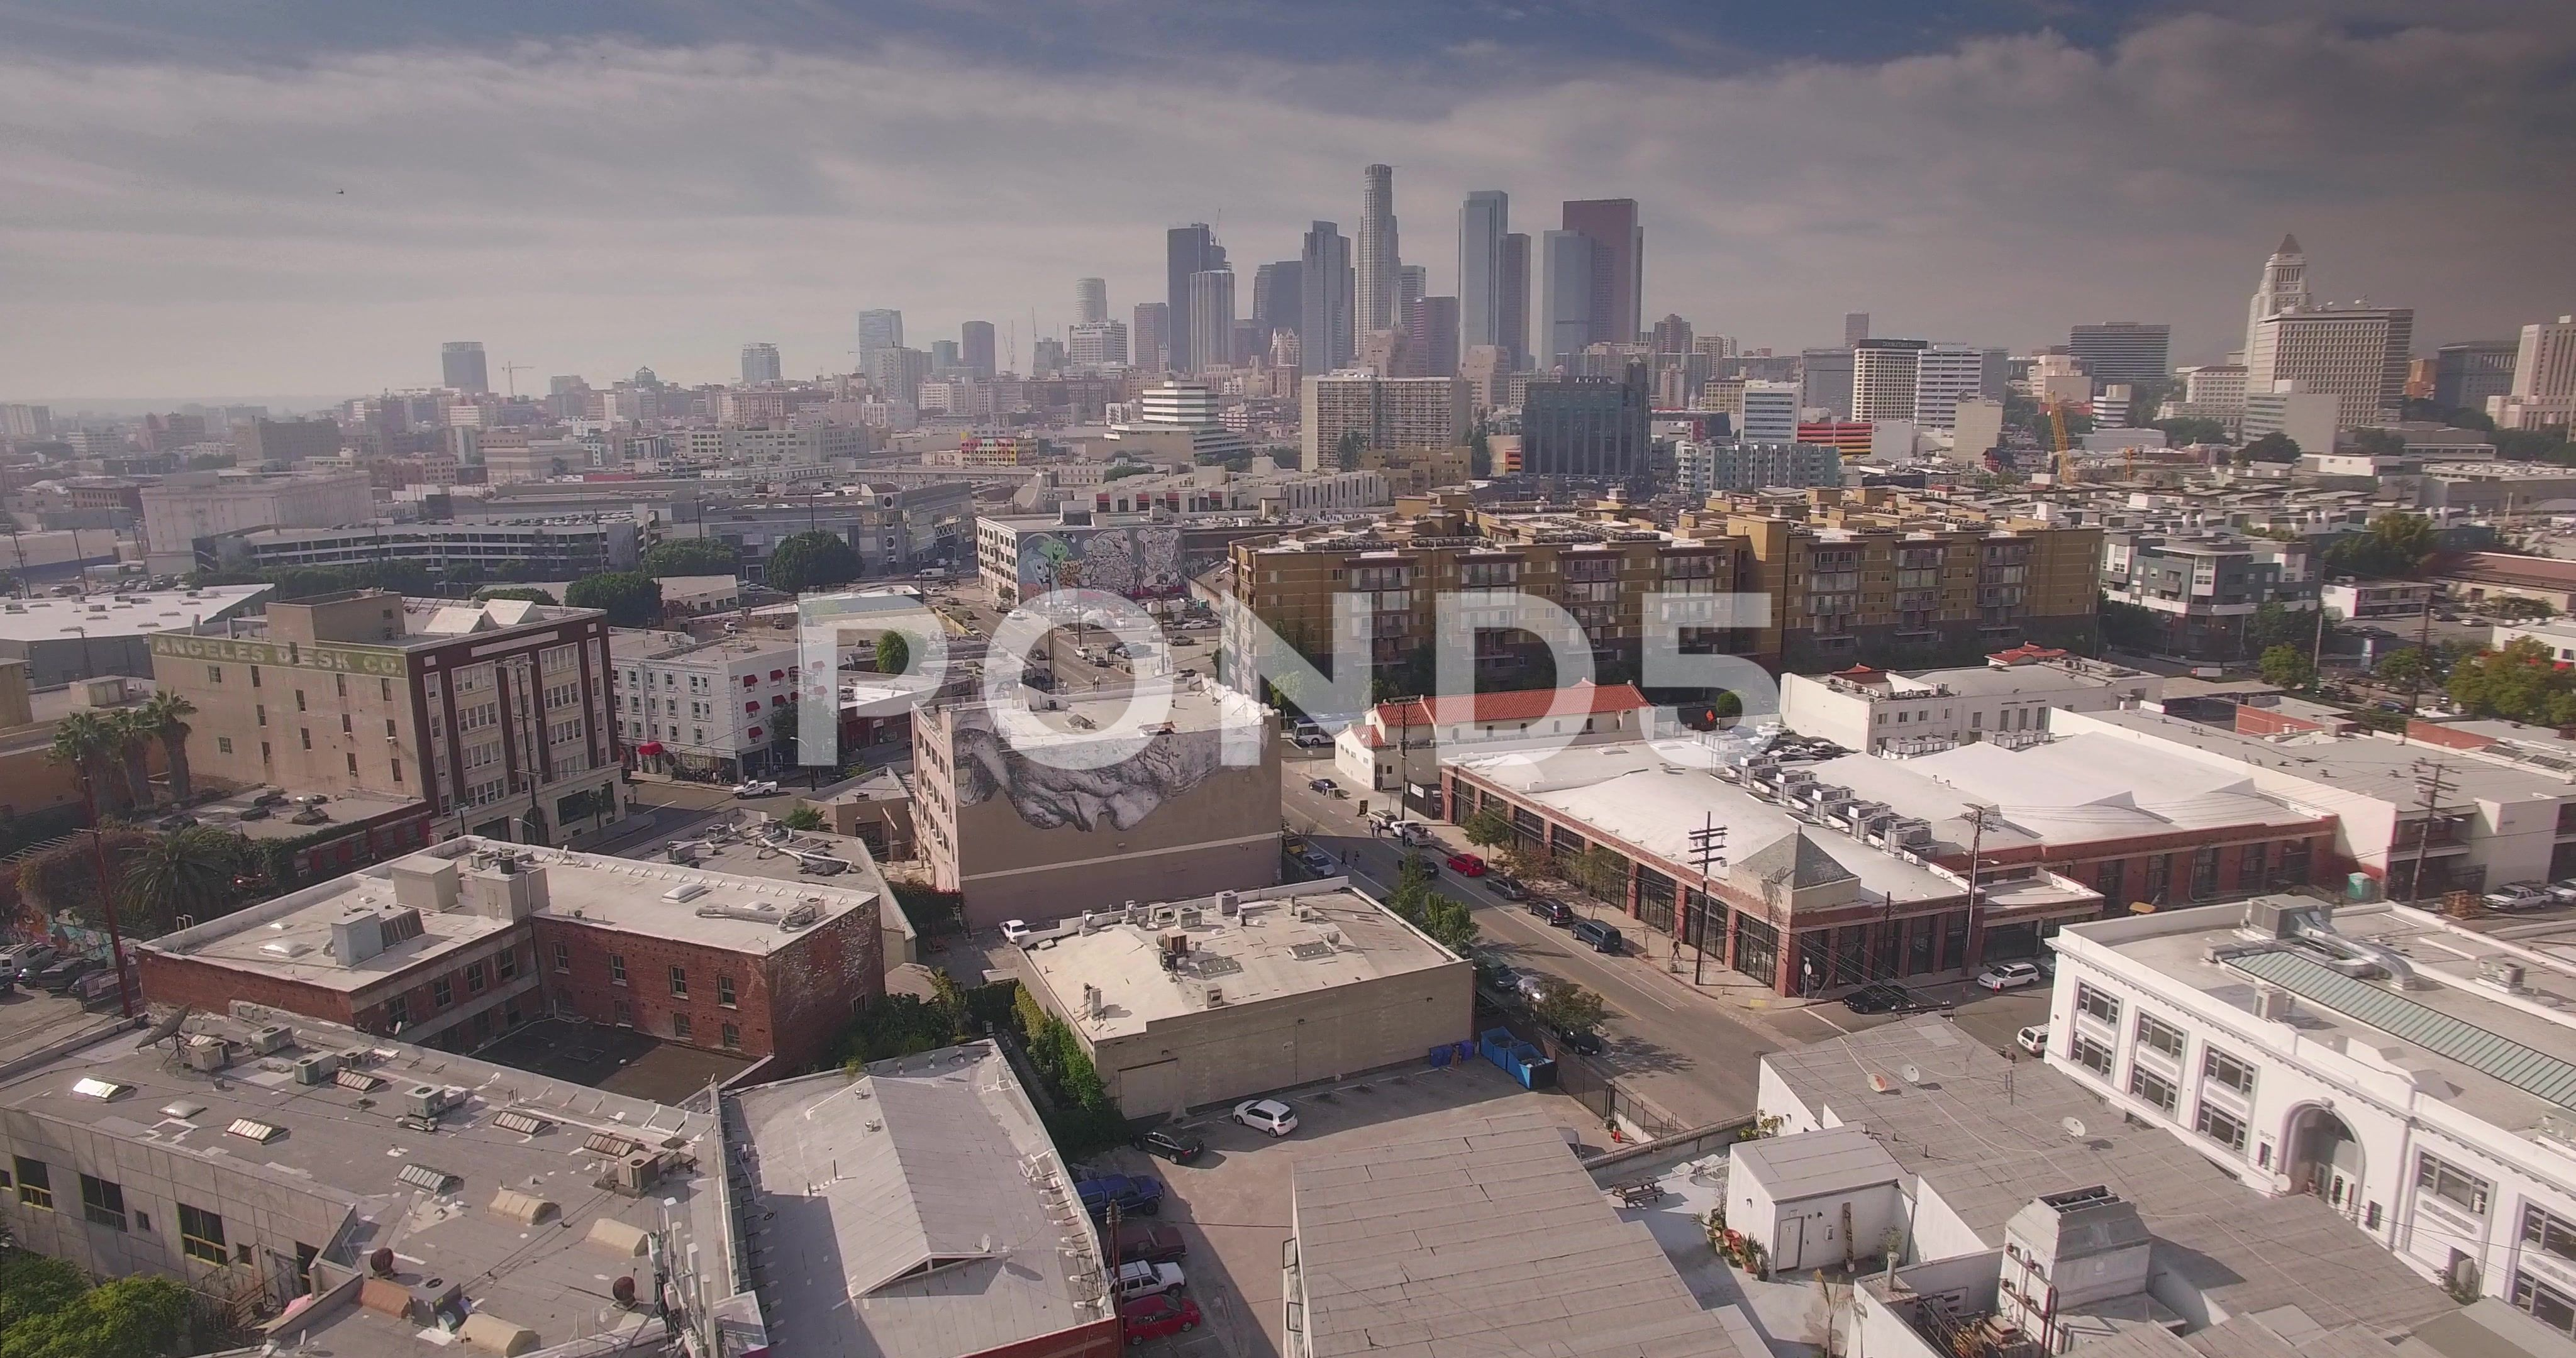 Aerial View Of Arts District With Downtown Los Angeles Skyline In Background Stock Footage District Downtown Arts Ae Los Angeles Skyline Skyline Arts District